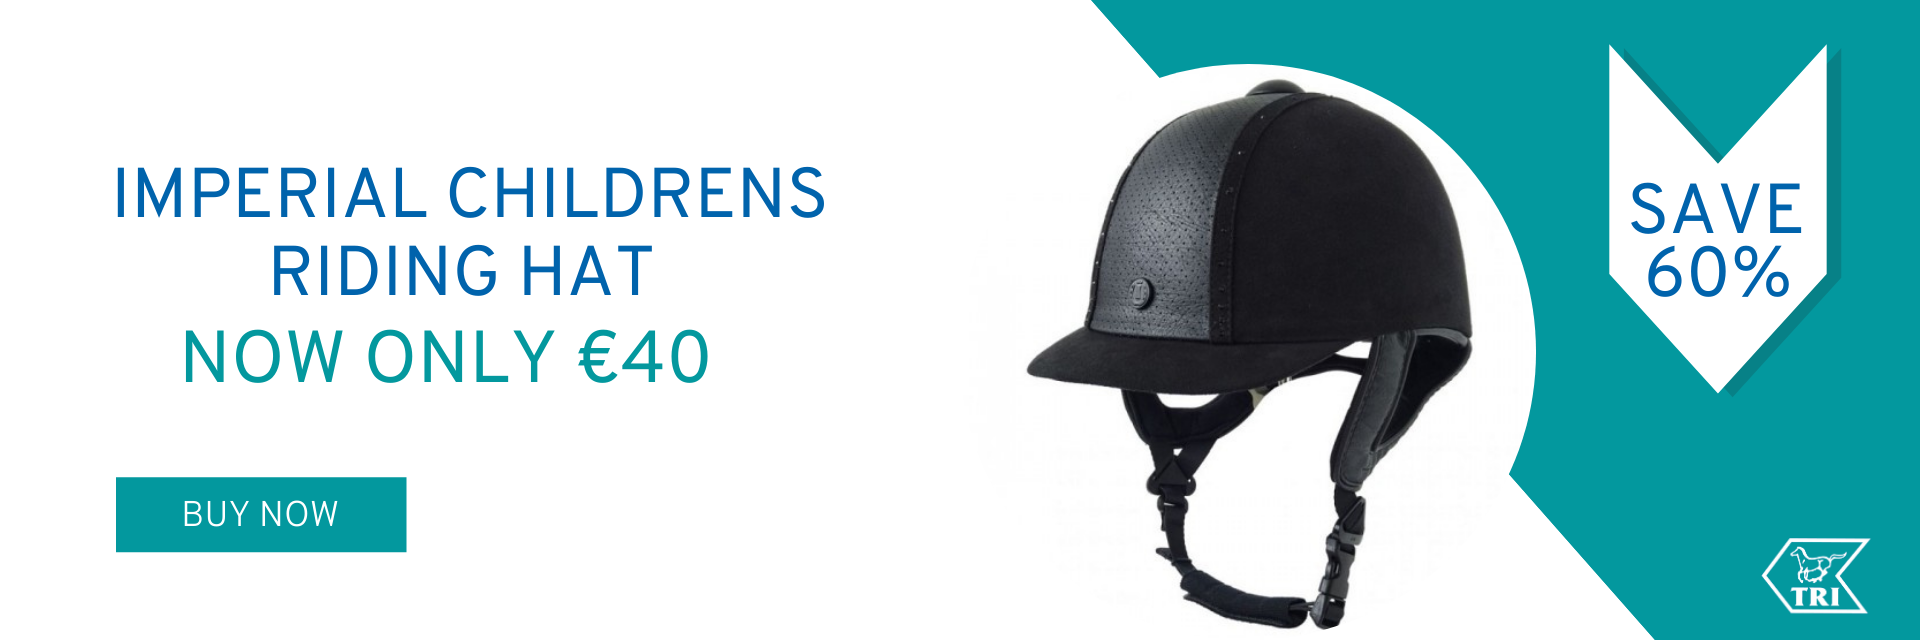 Imperial childrens riding hat now only €40